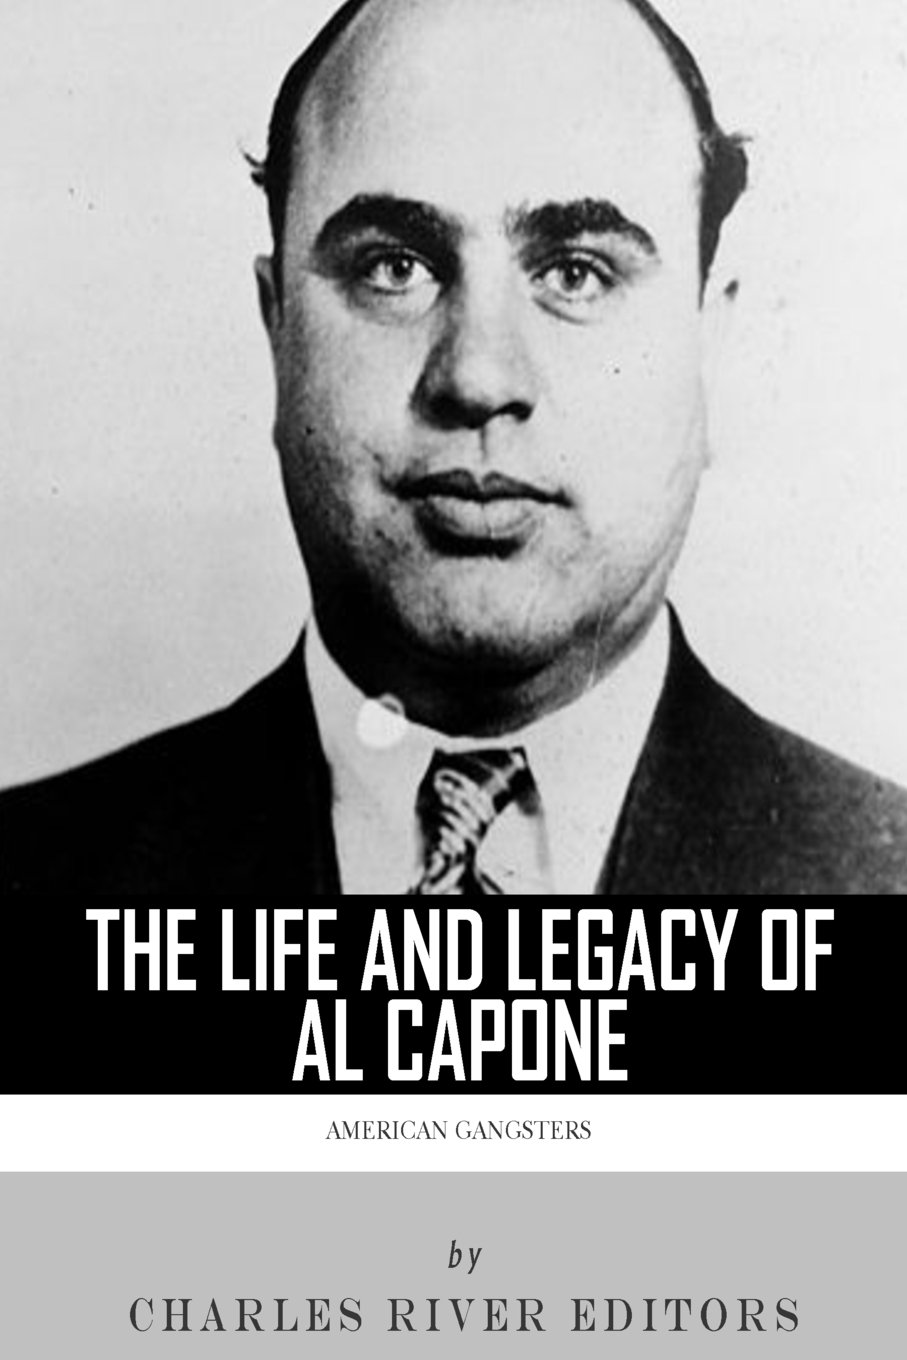 al capone research papers Do research papers need citations we care video essay winners 1993 dbq ap us history essays related post of al capone research paper jam.